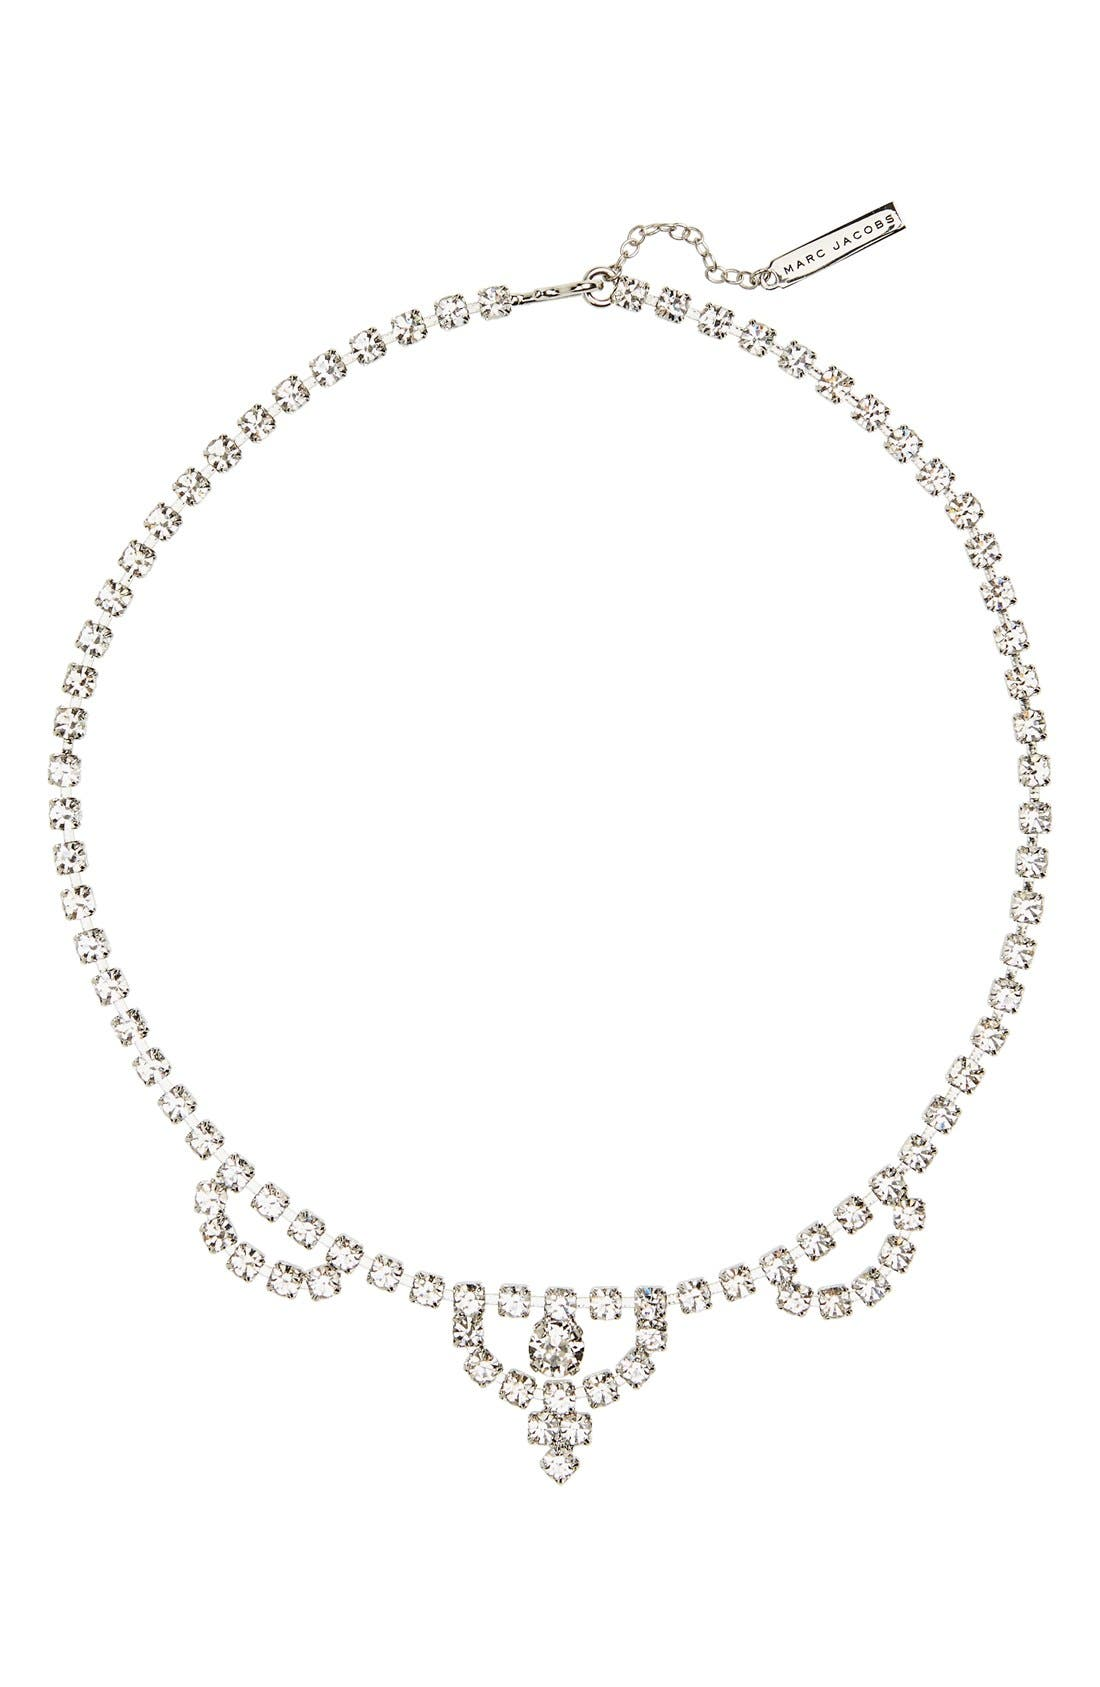 Alternate Image 1 Selected - MARC JACOBS Crystal Bib Necklace